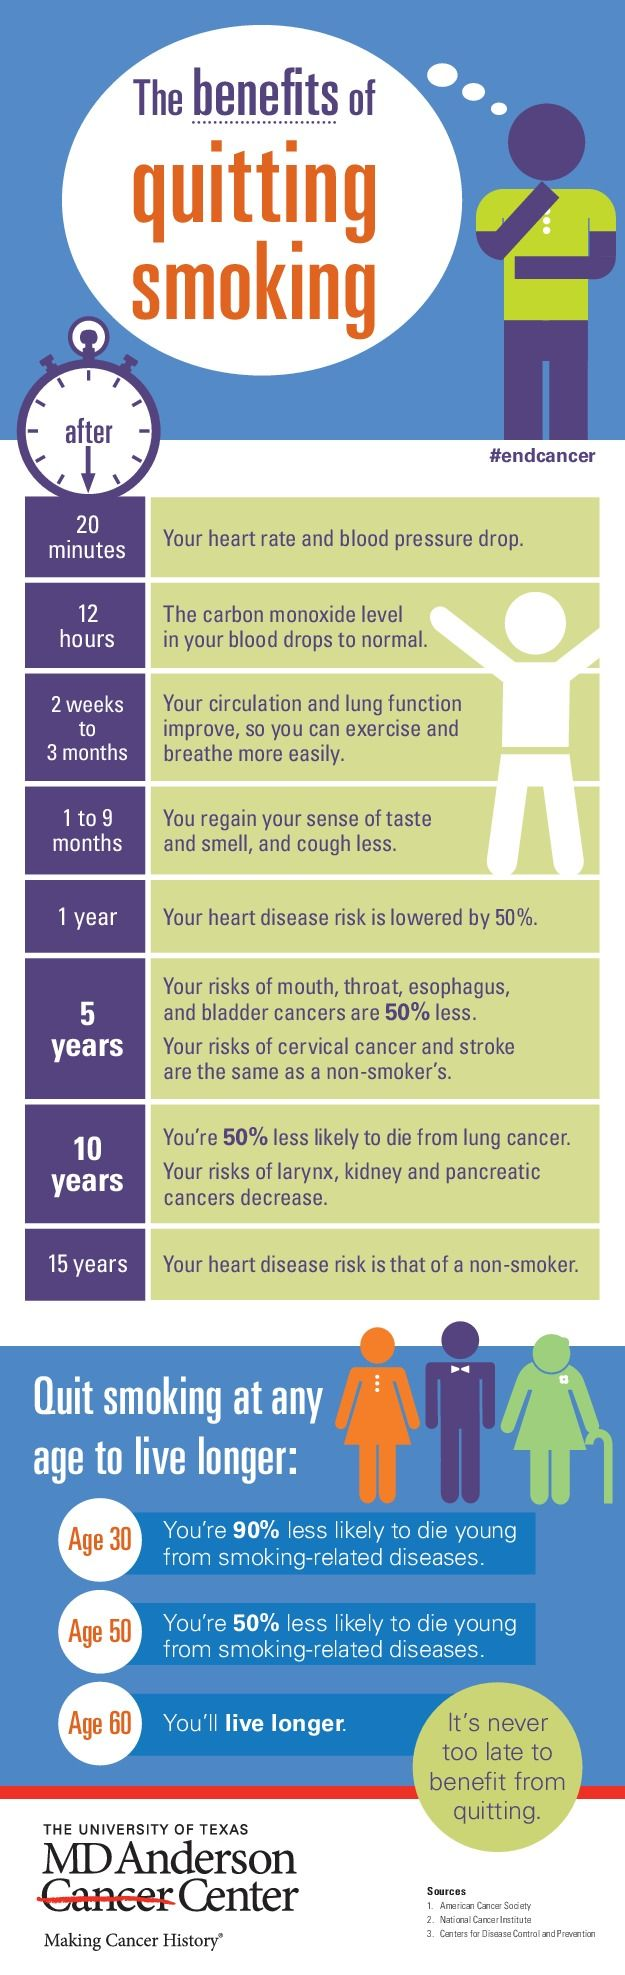 The Benefits of Quitting Smoking   Visual.ly